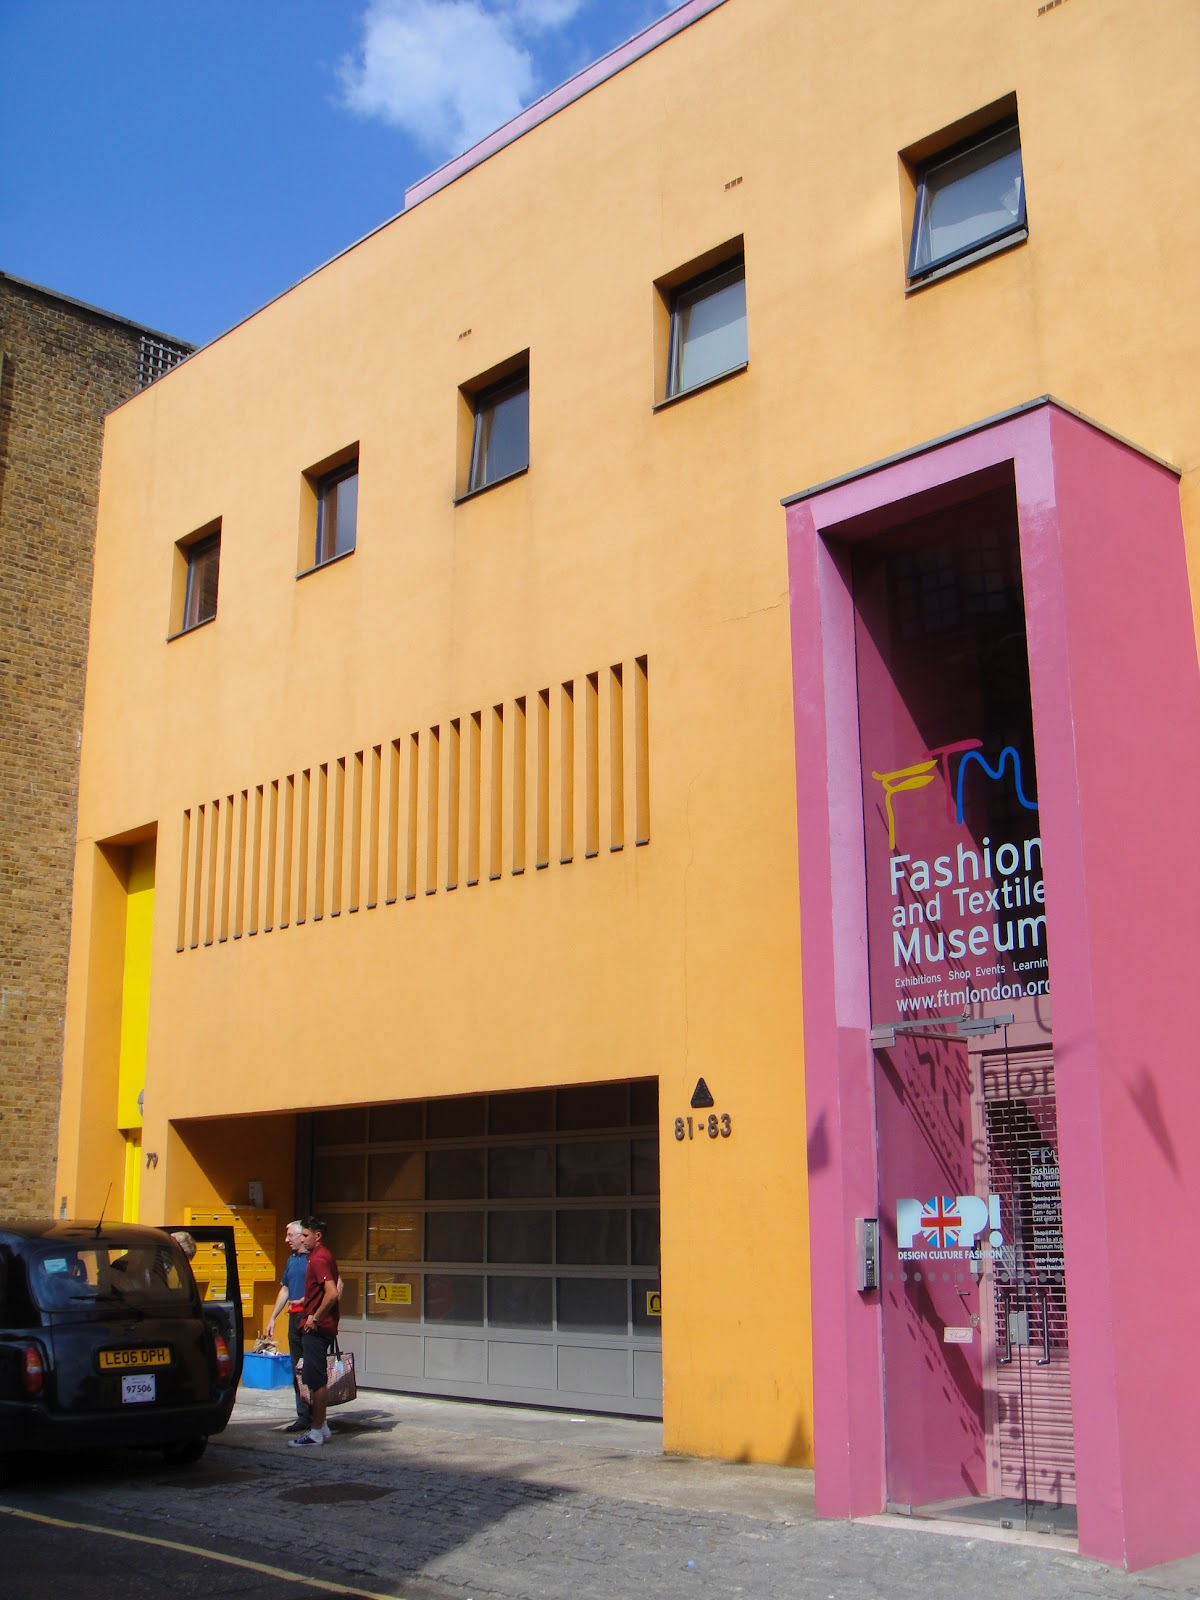 Fashion and Textile Museum London, Brutalism and Booze: Fashion & Textile Museum, Bermonsey High St ...